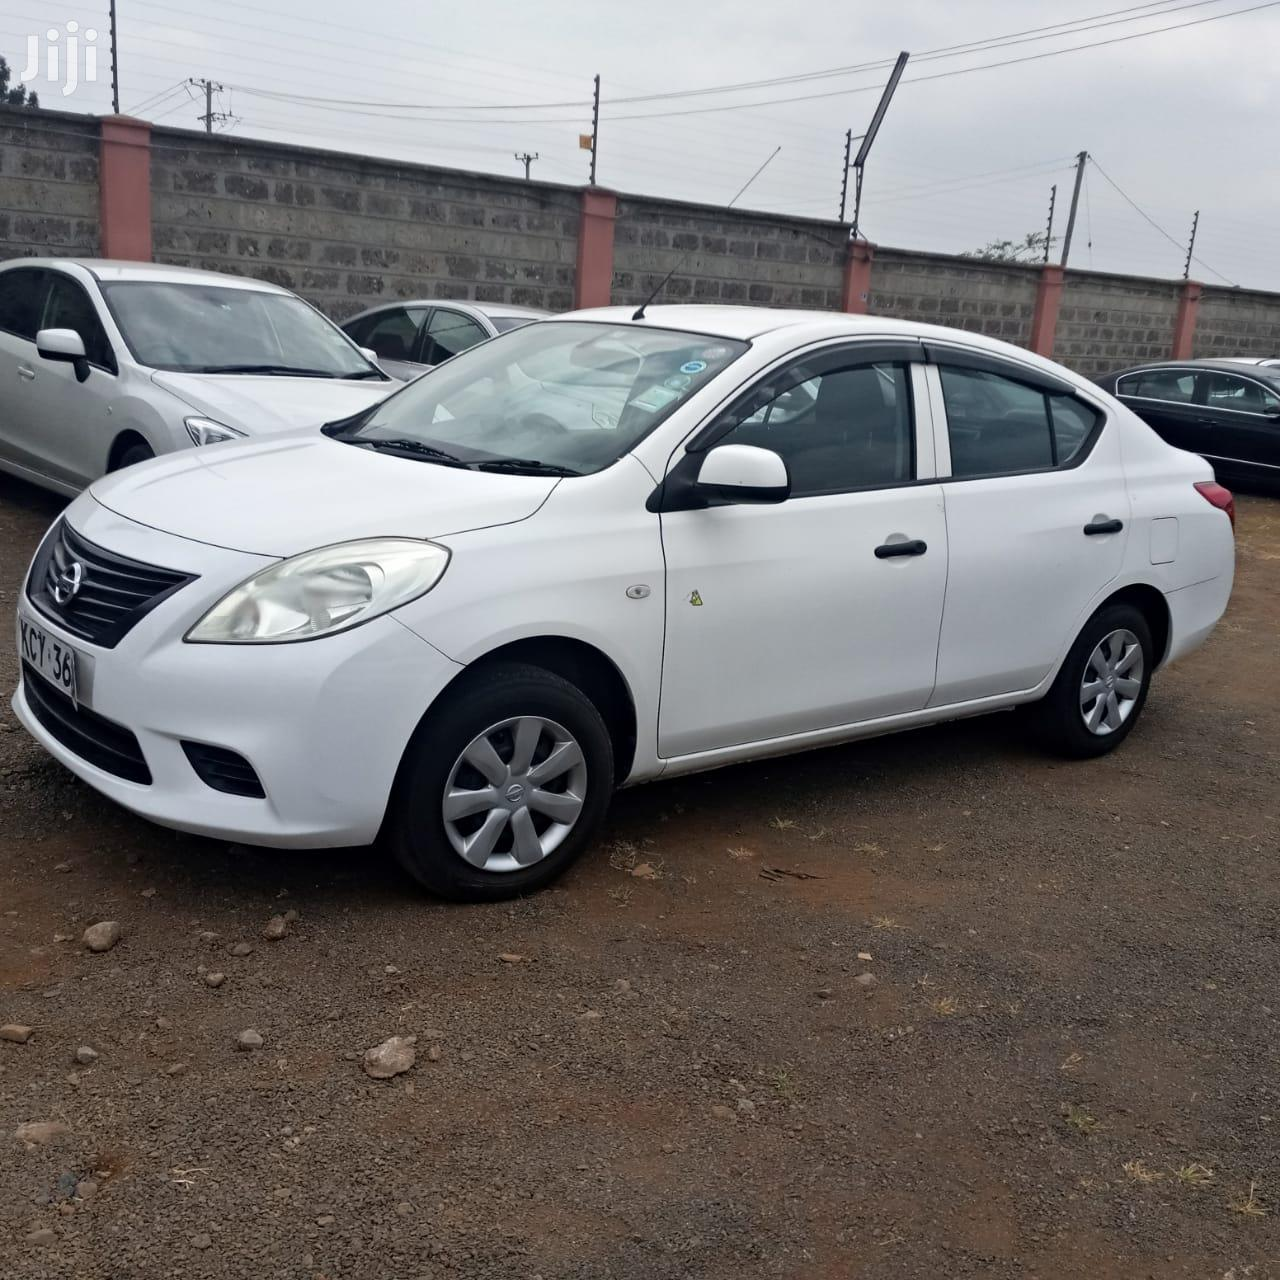 Archive: Nissan Tiida 2013 White